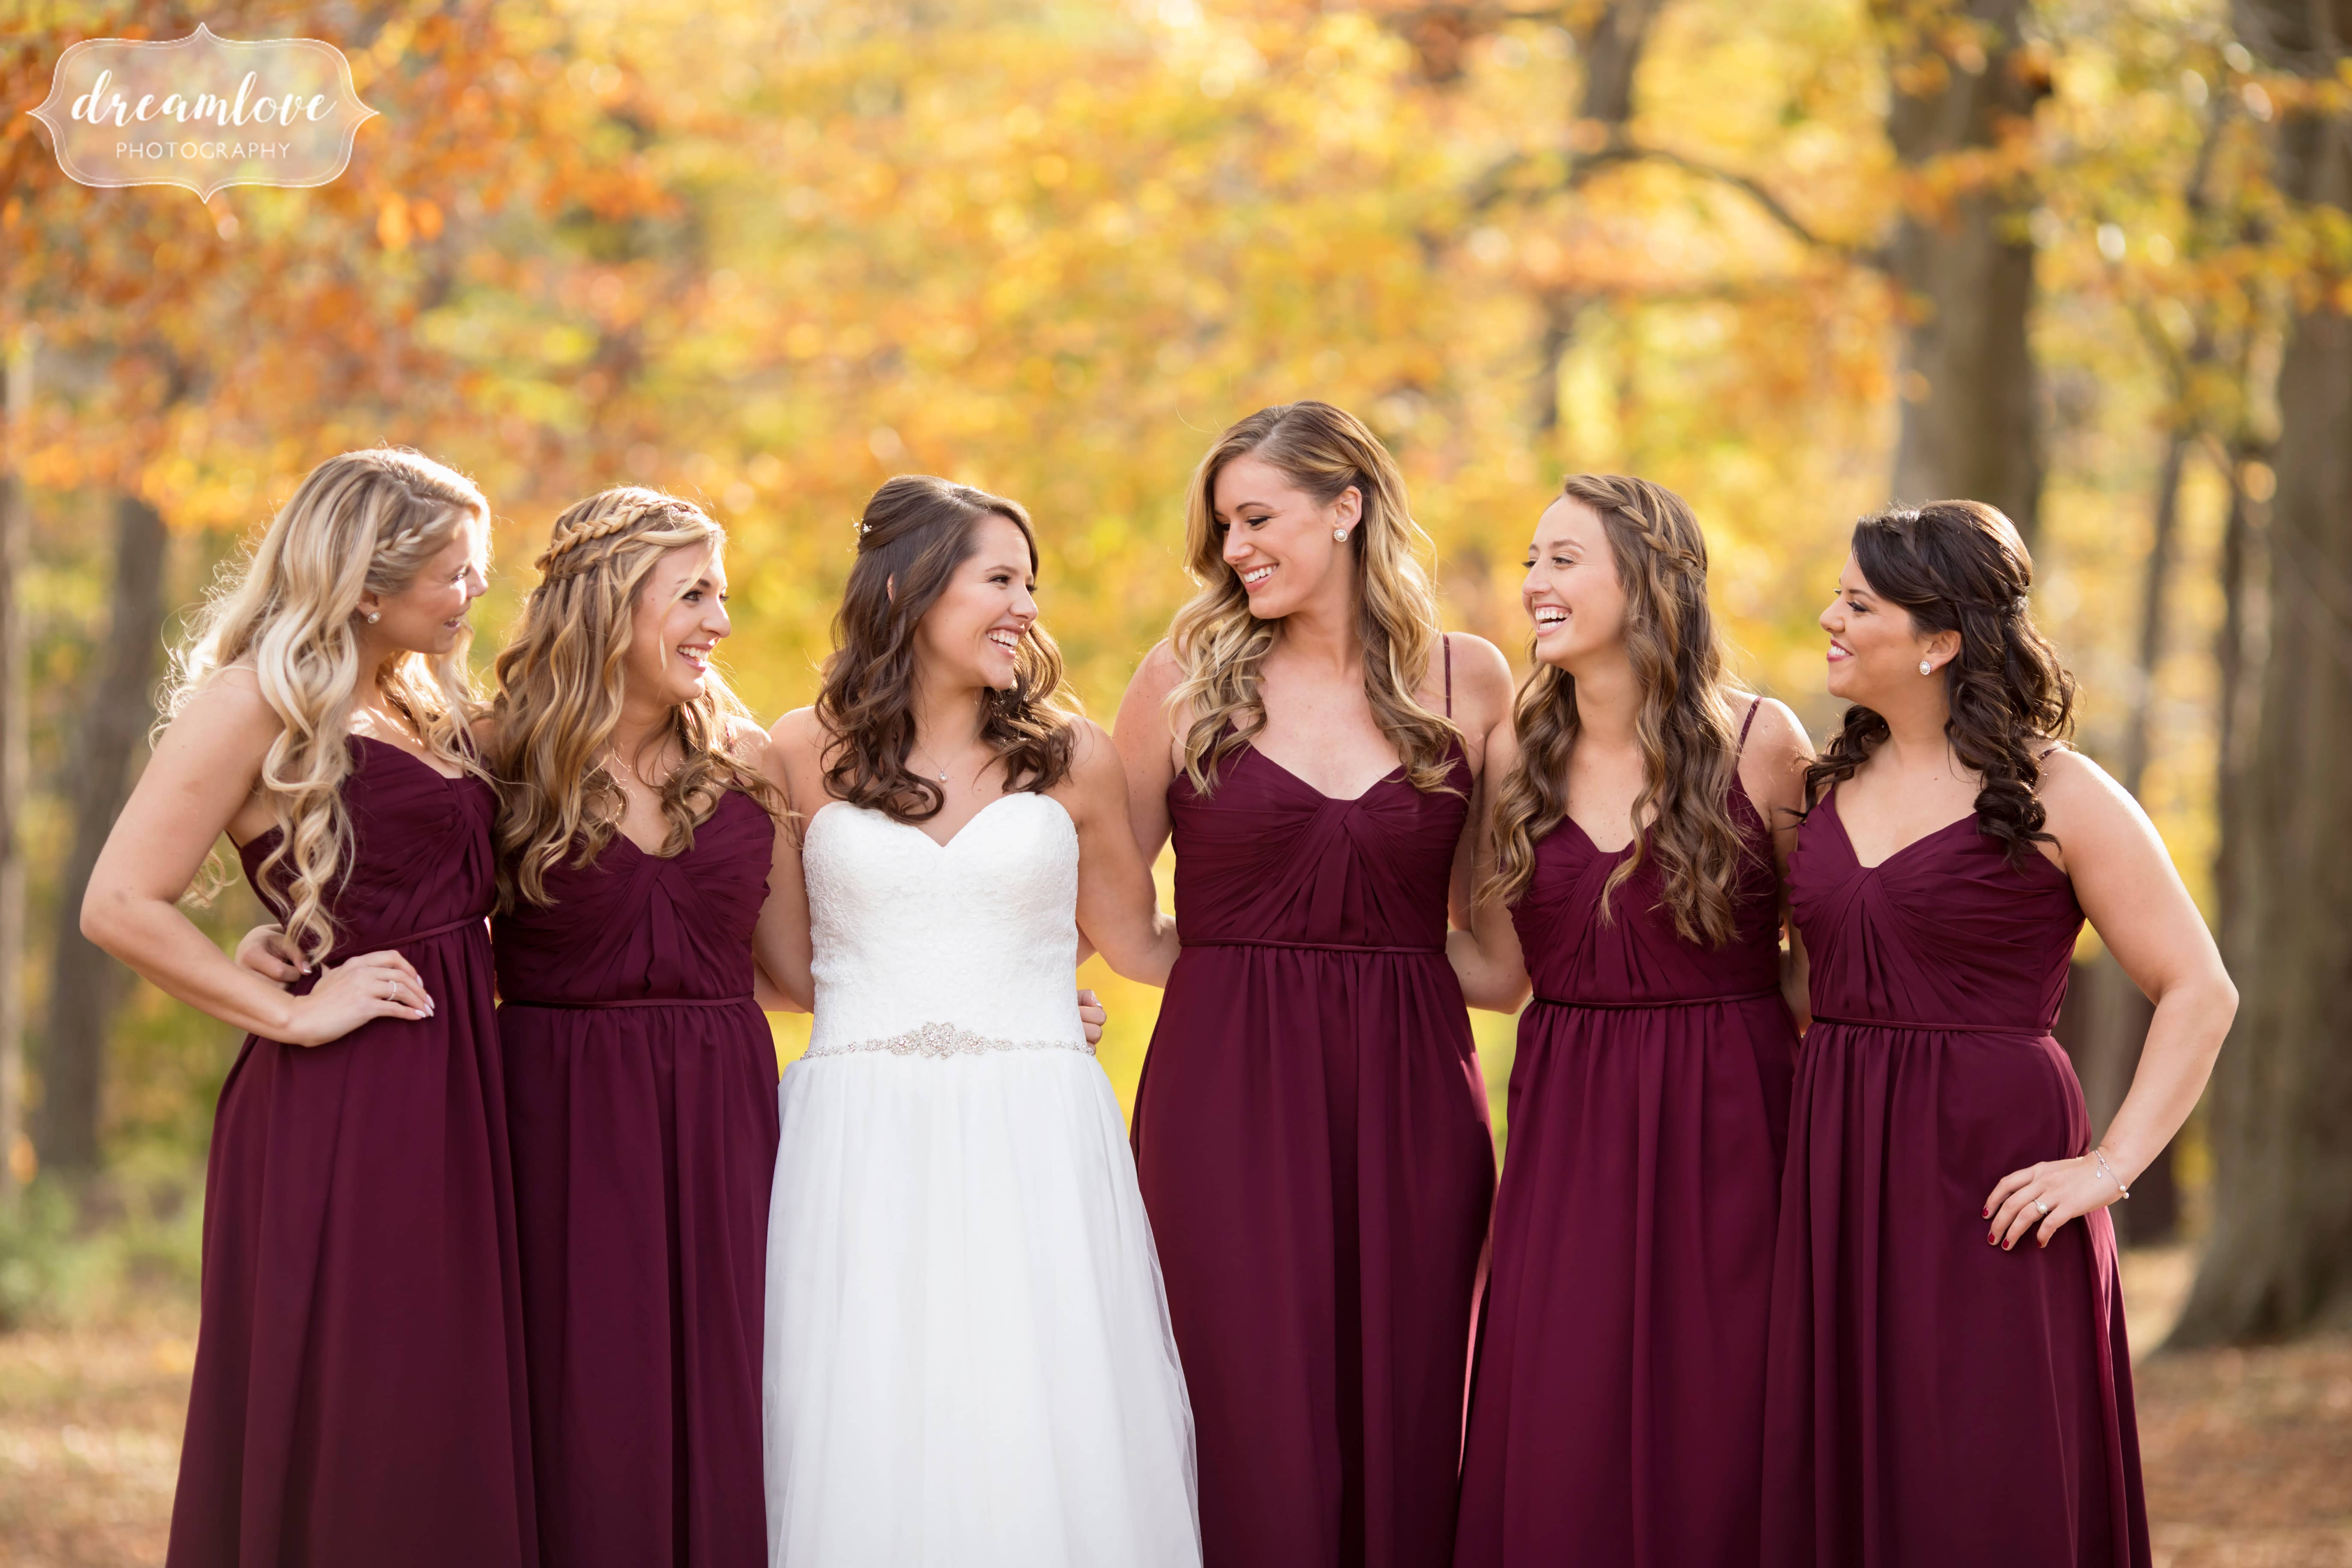 Soft light wedding photo of the bridesmaids in the woods with yellow trees in CT.